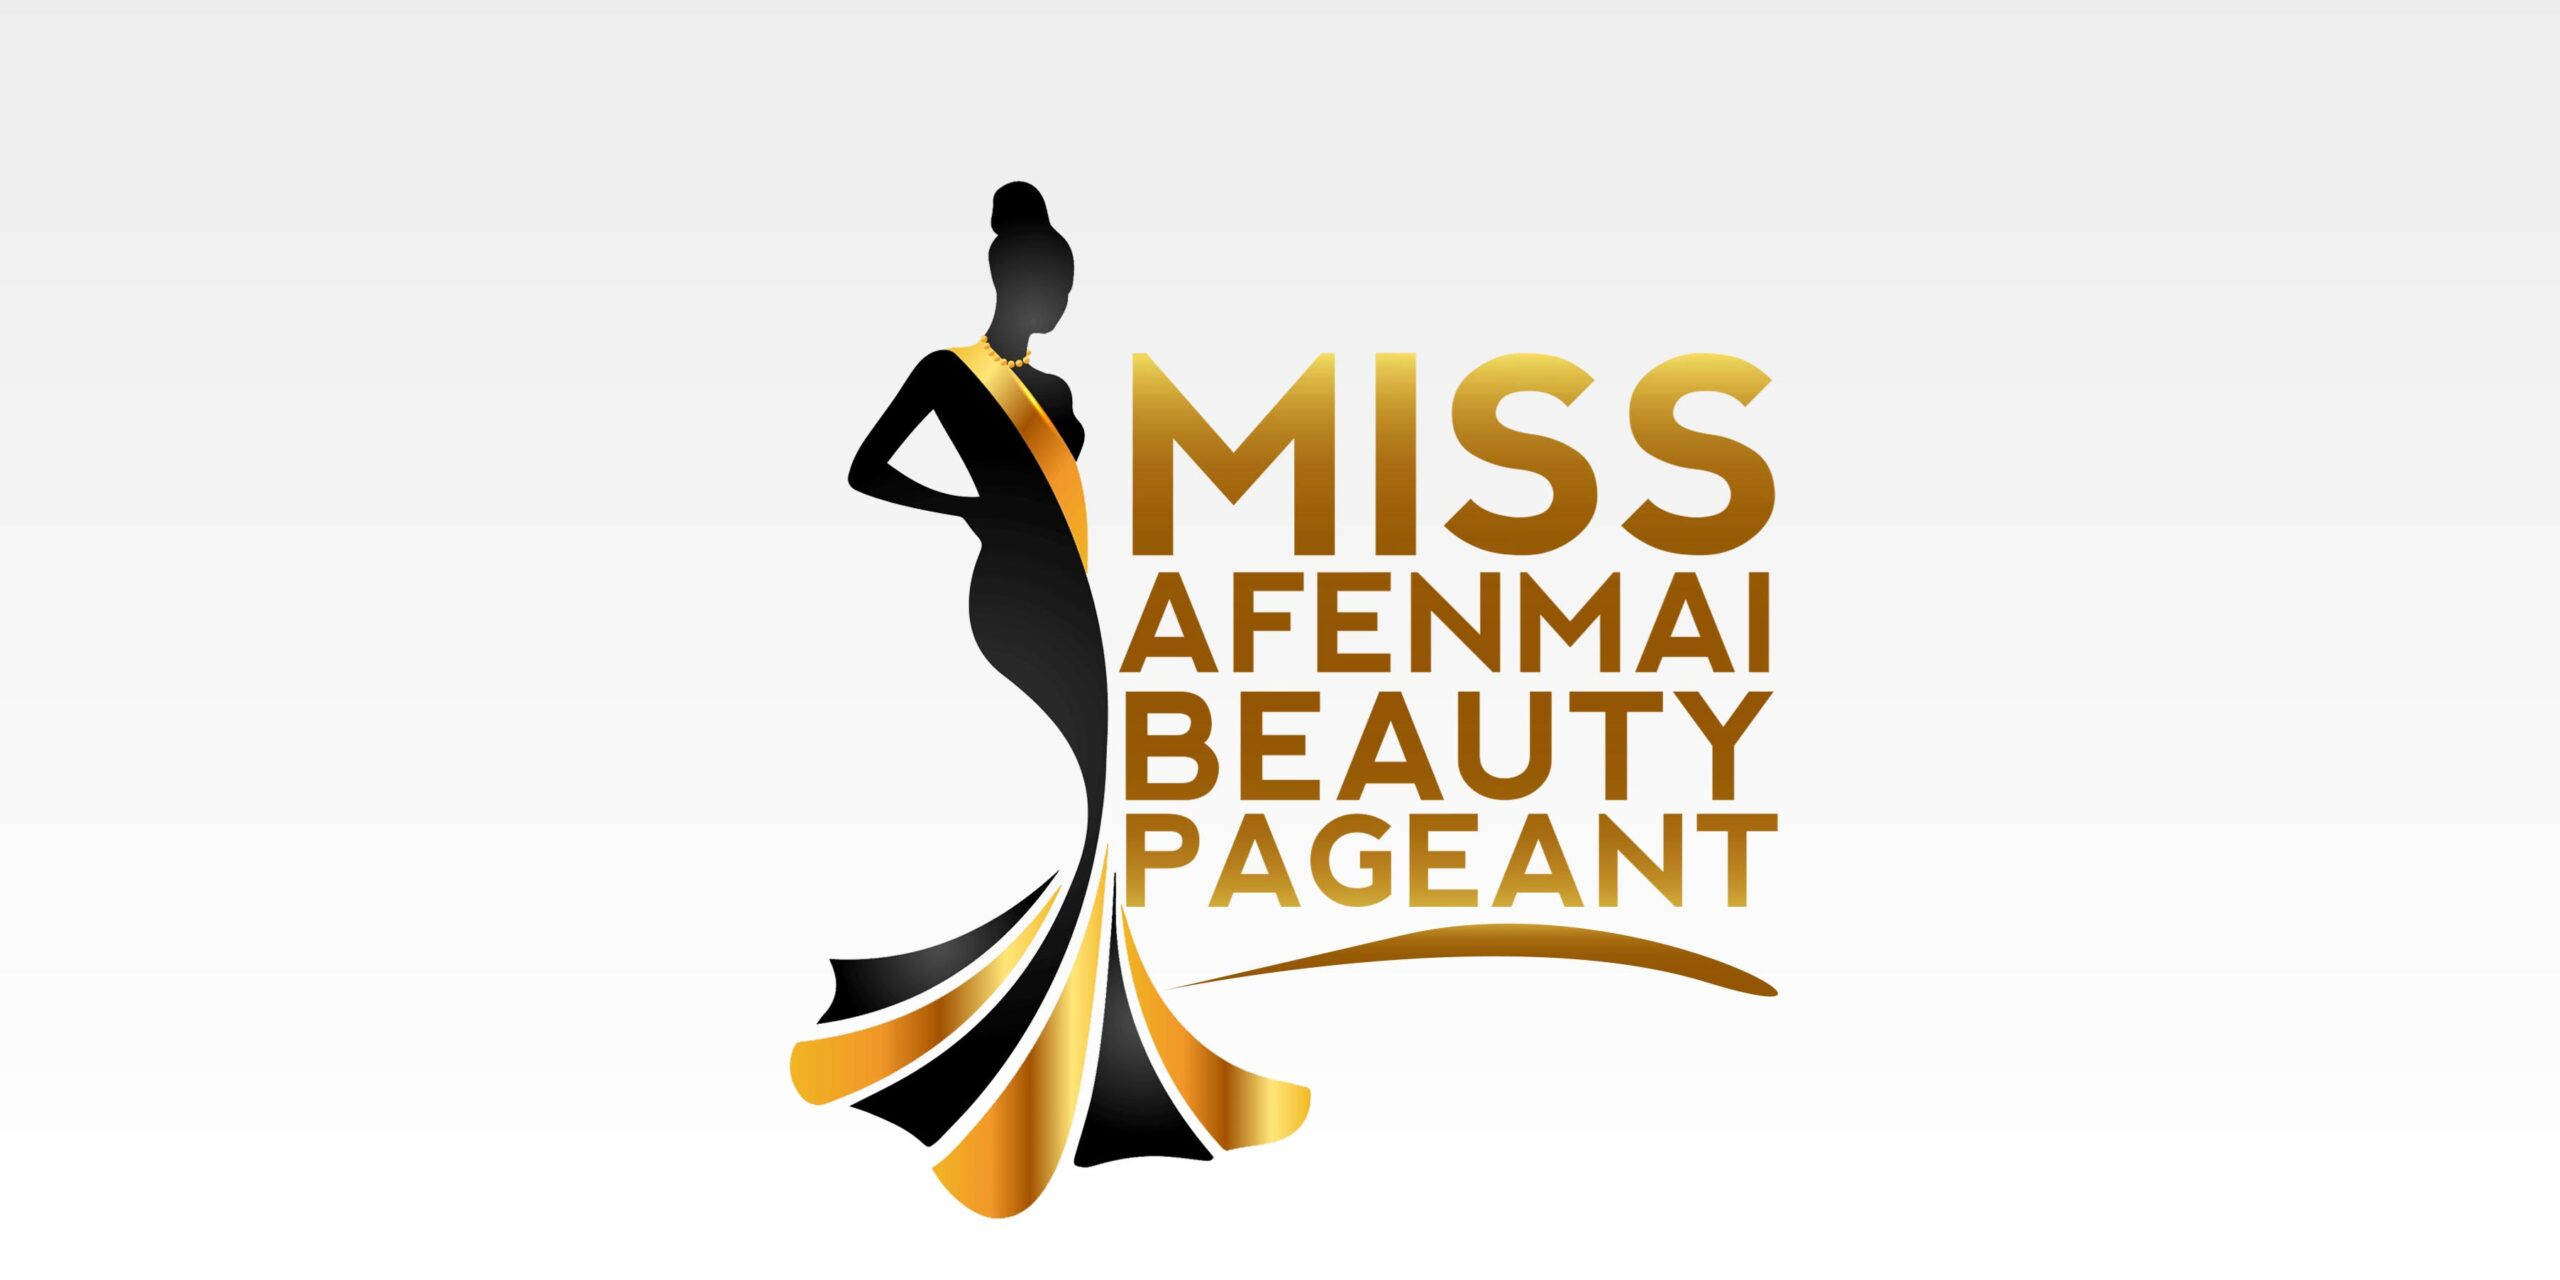 Miss Afenmai Beauty Pageant